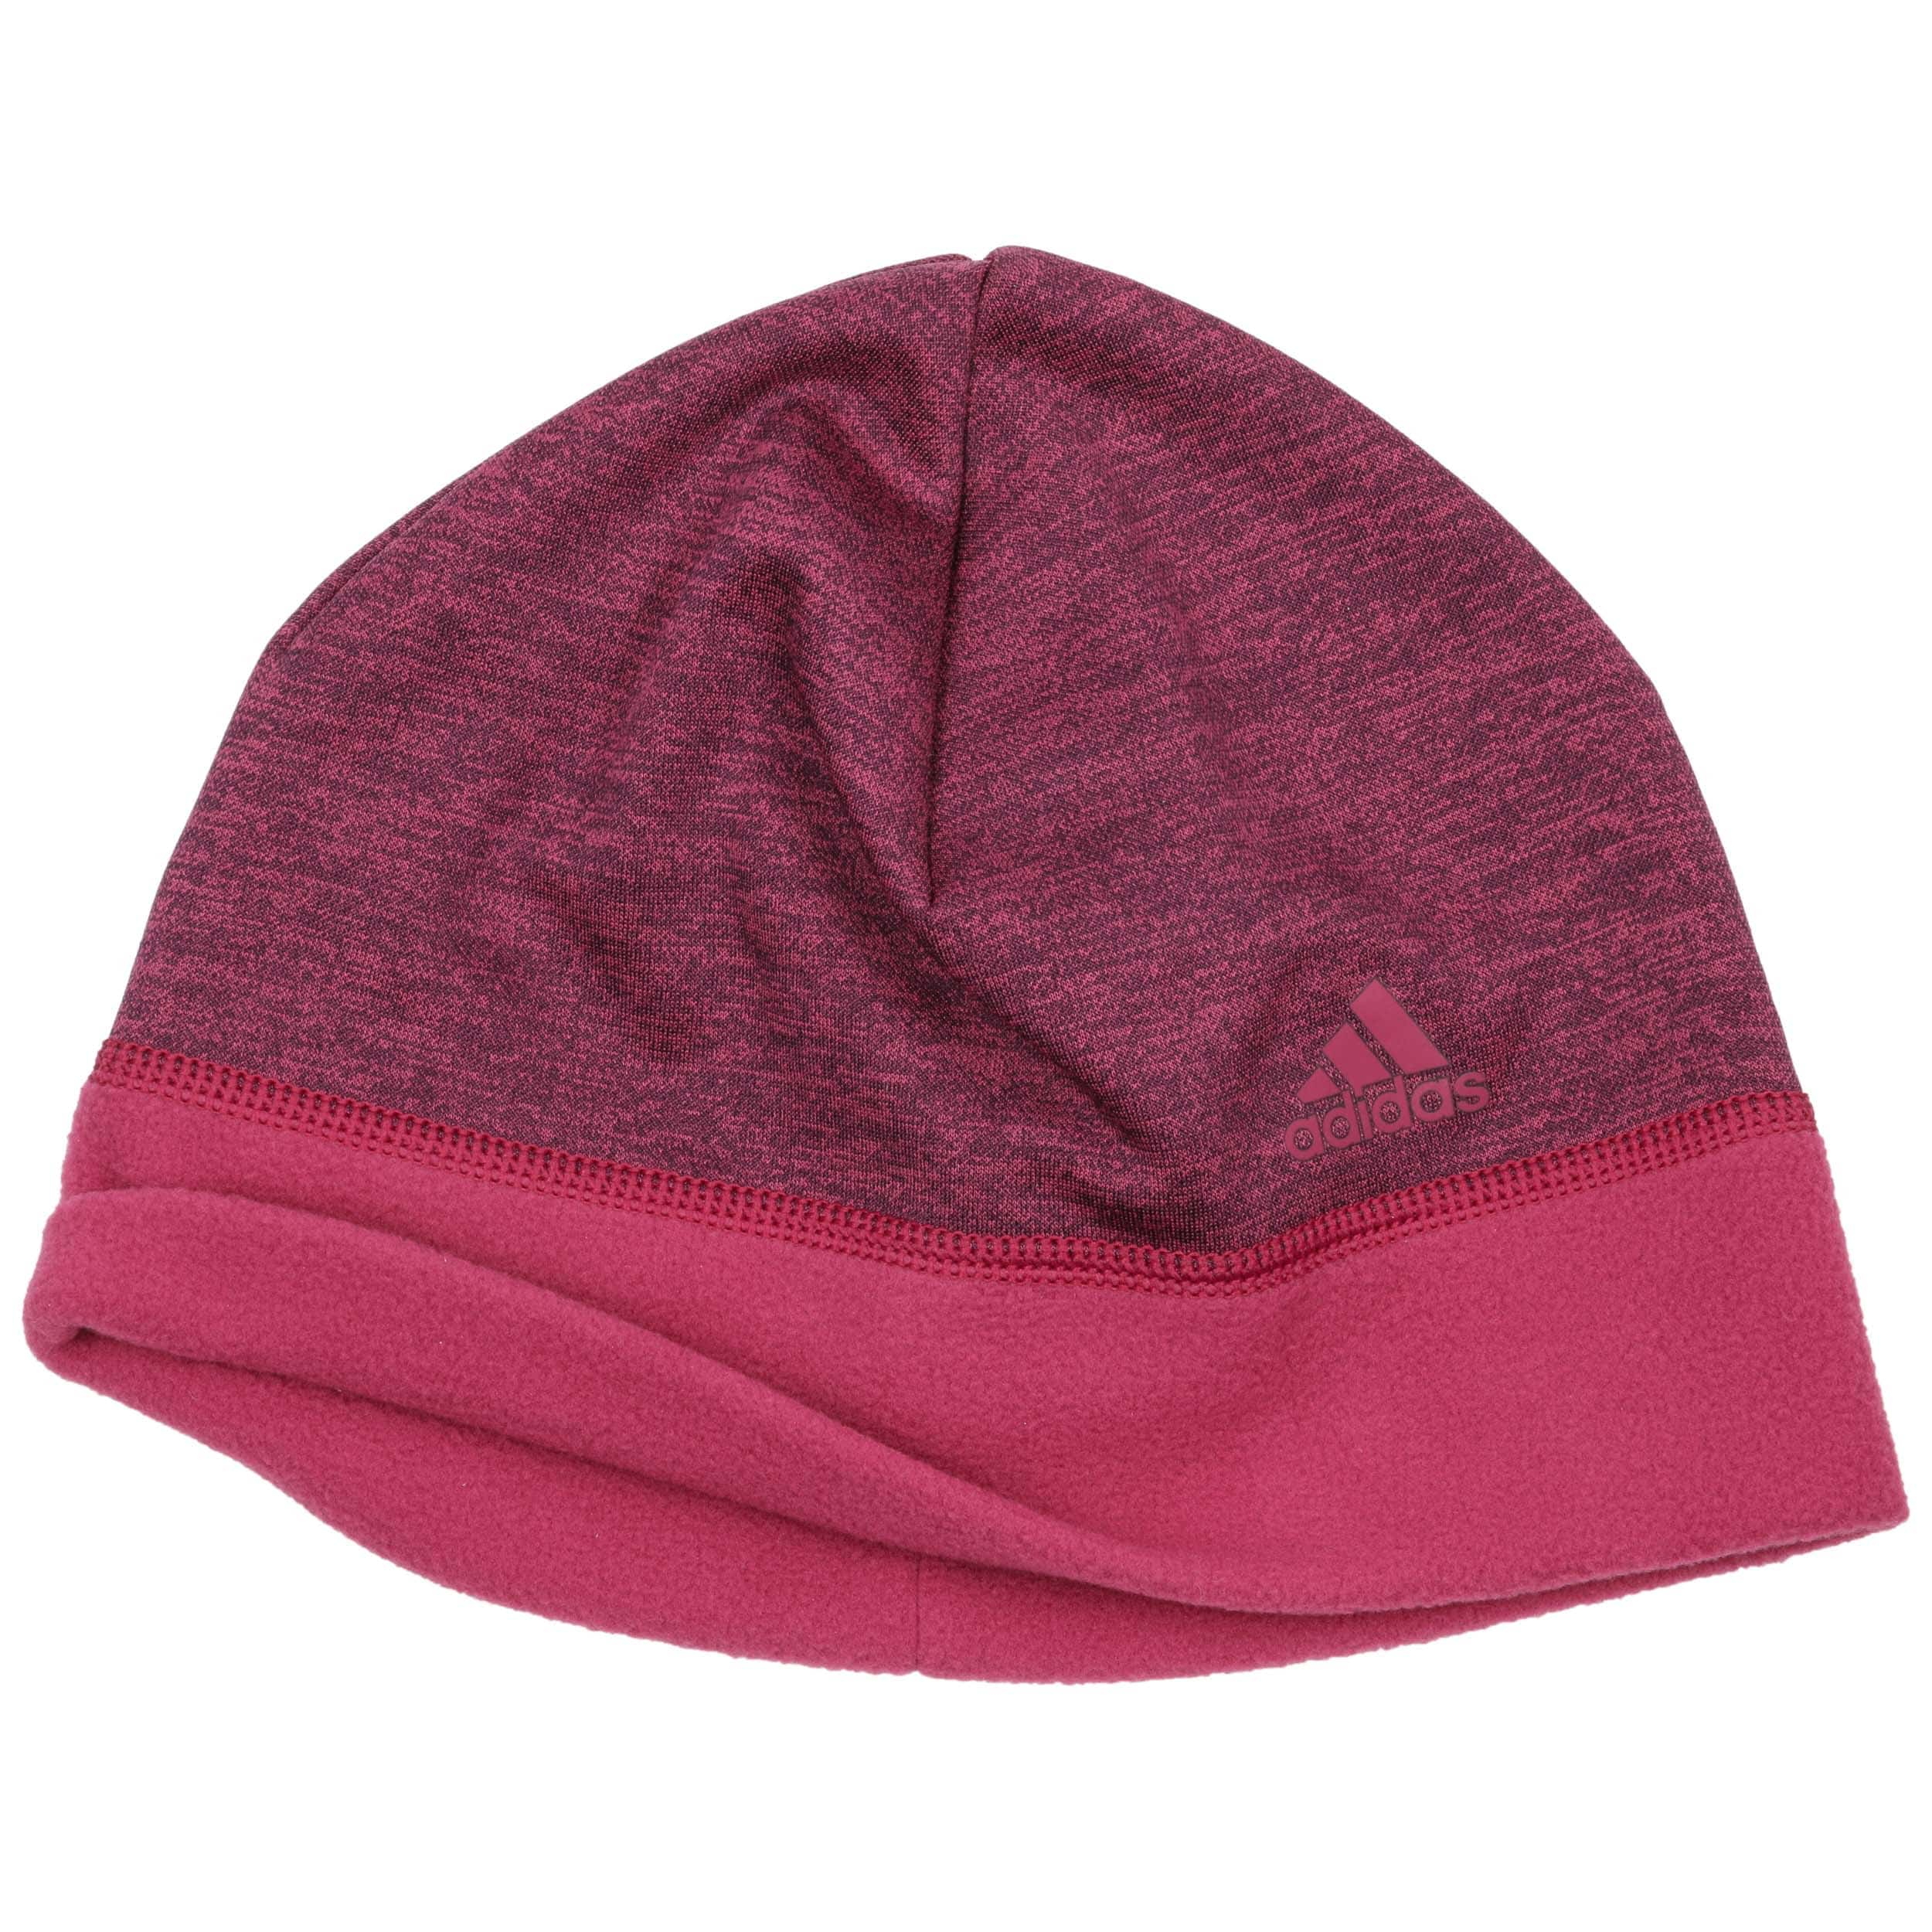 4630f23b6fc Climawarm Performance Beanie by adidas - purple 1 ...